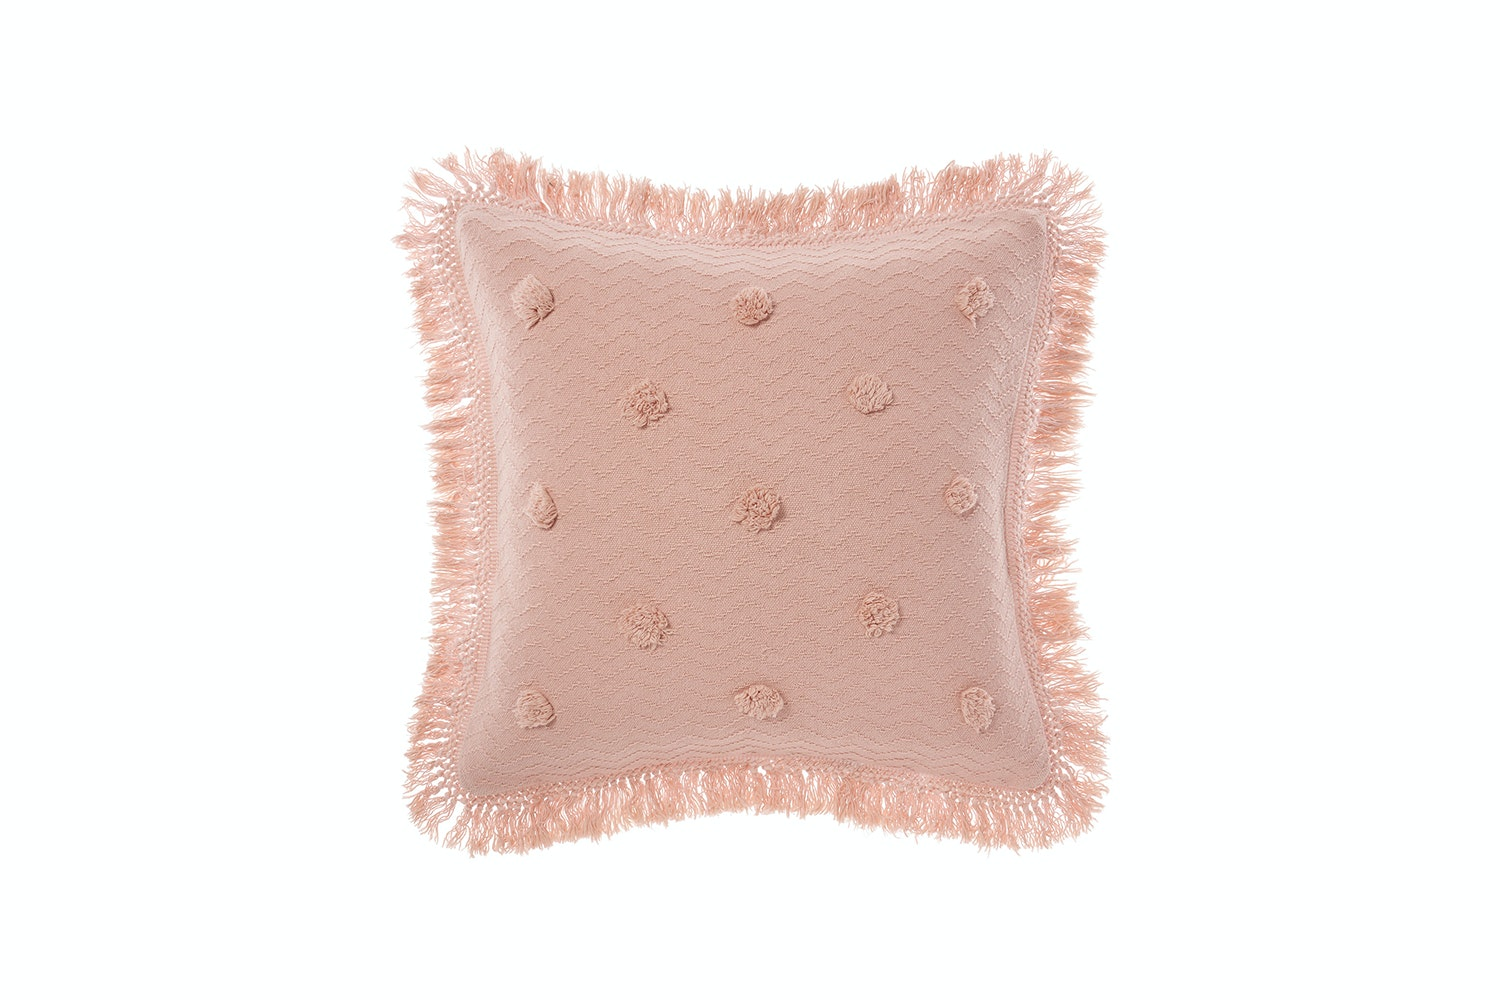 Adalyn Peach European Pillowcase by Savona